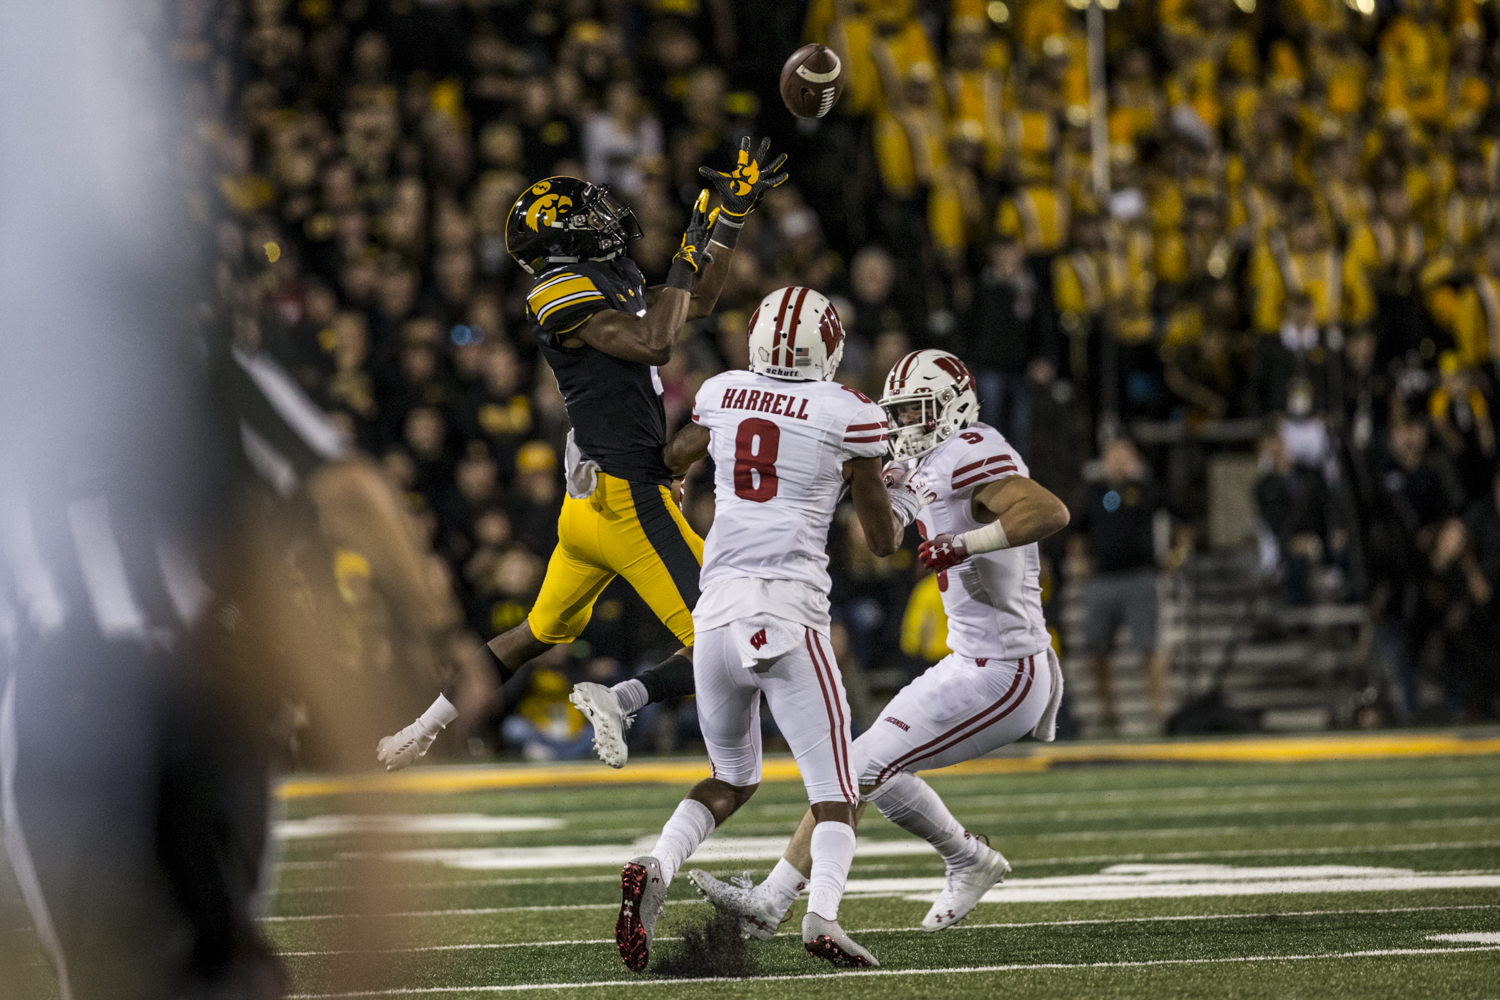 Iowa%27s+Ihmir+Smith-Marsette+jumps+to+attempt+a+catch+during+Iowa%27s+game+against+Wisconsin+at+Kinnick+Stadium+on+Saturday%2C+September+22%2C+2018.+The+Badgers+defeated+the+Hawkeyes+28-17.